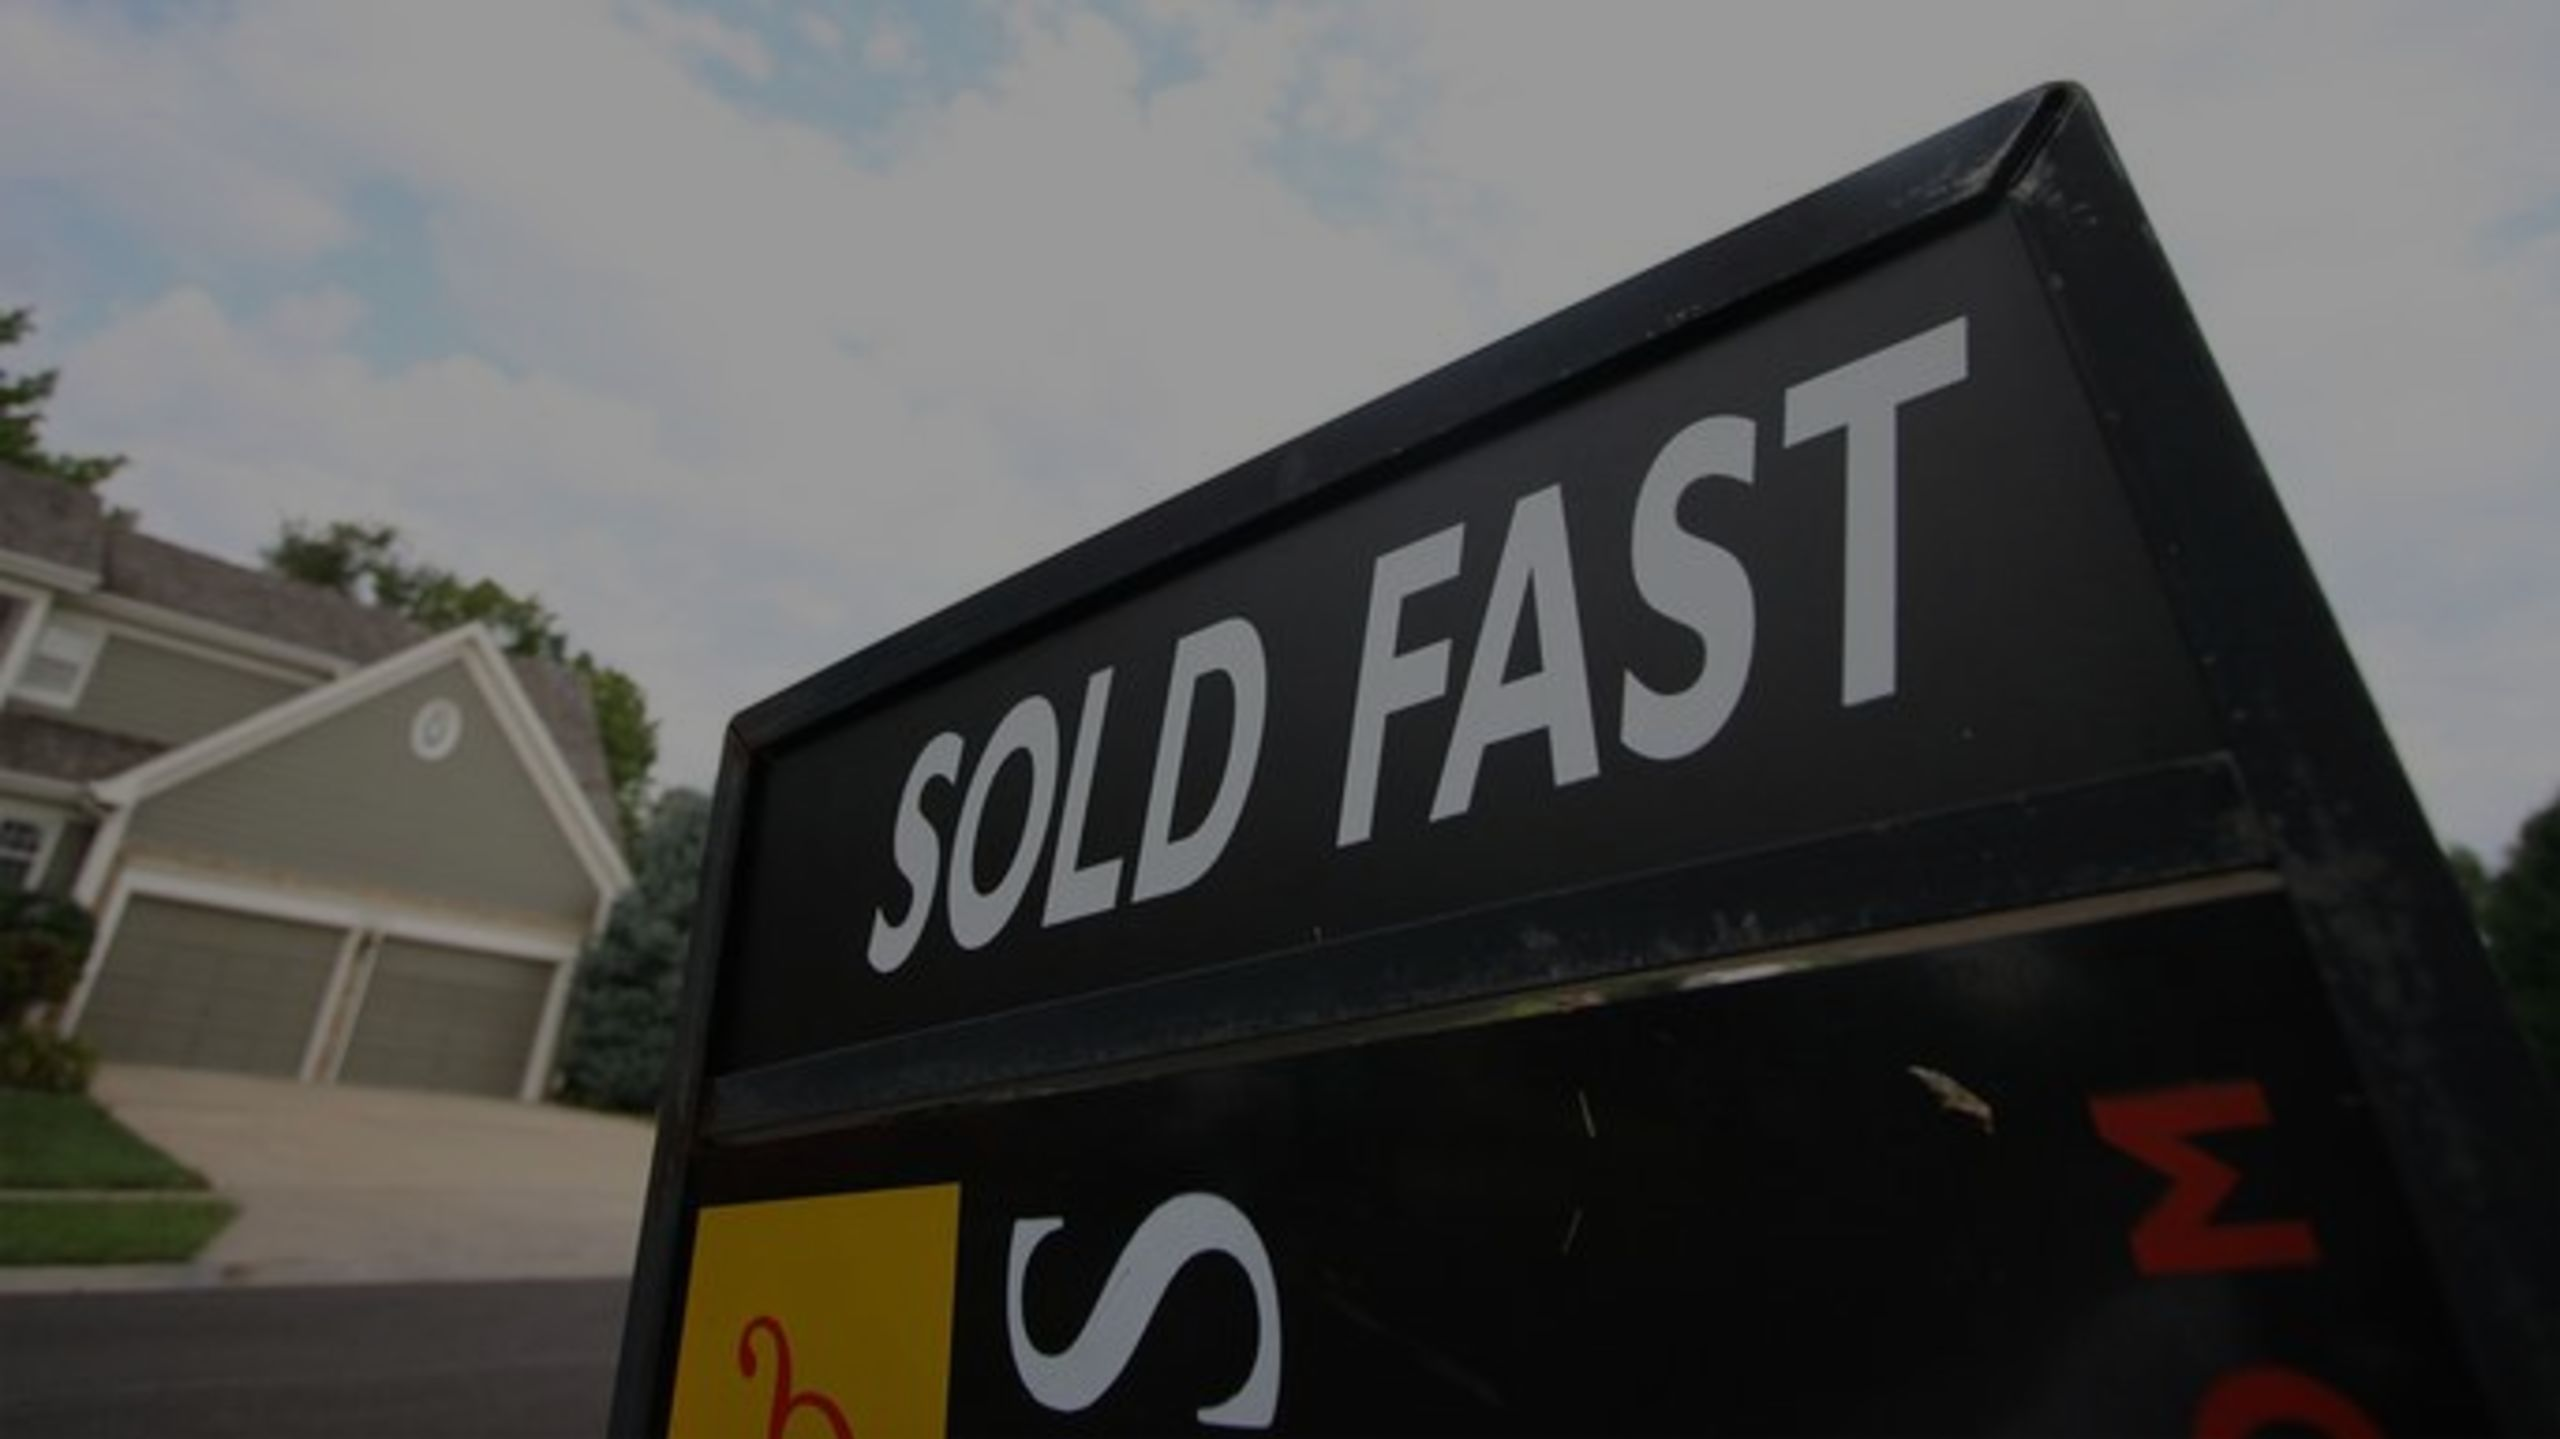 How to Sell Your House Fast: 5 Must-Know Tips to Move Your Property